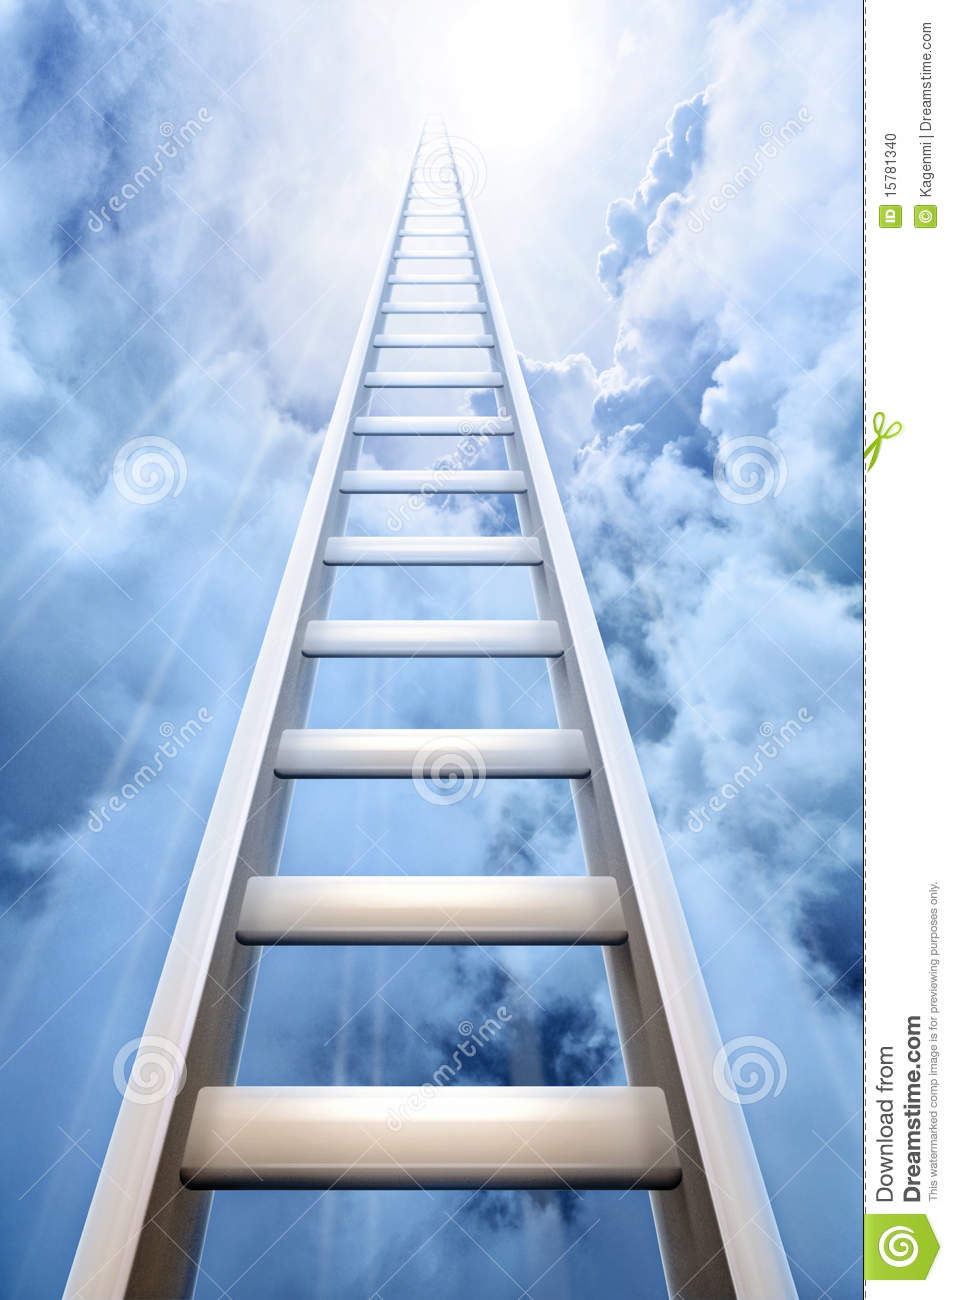 Reach For Clouds >> Ladder In Sky Symbolizing Success Stock Photo - Image: 15781340